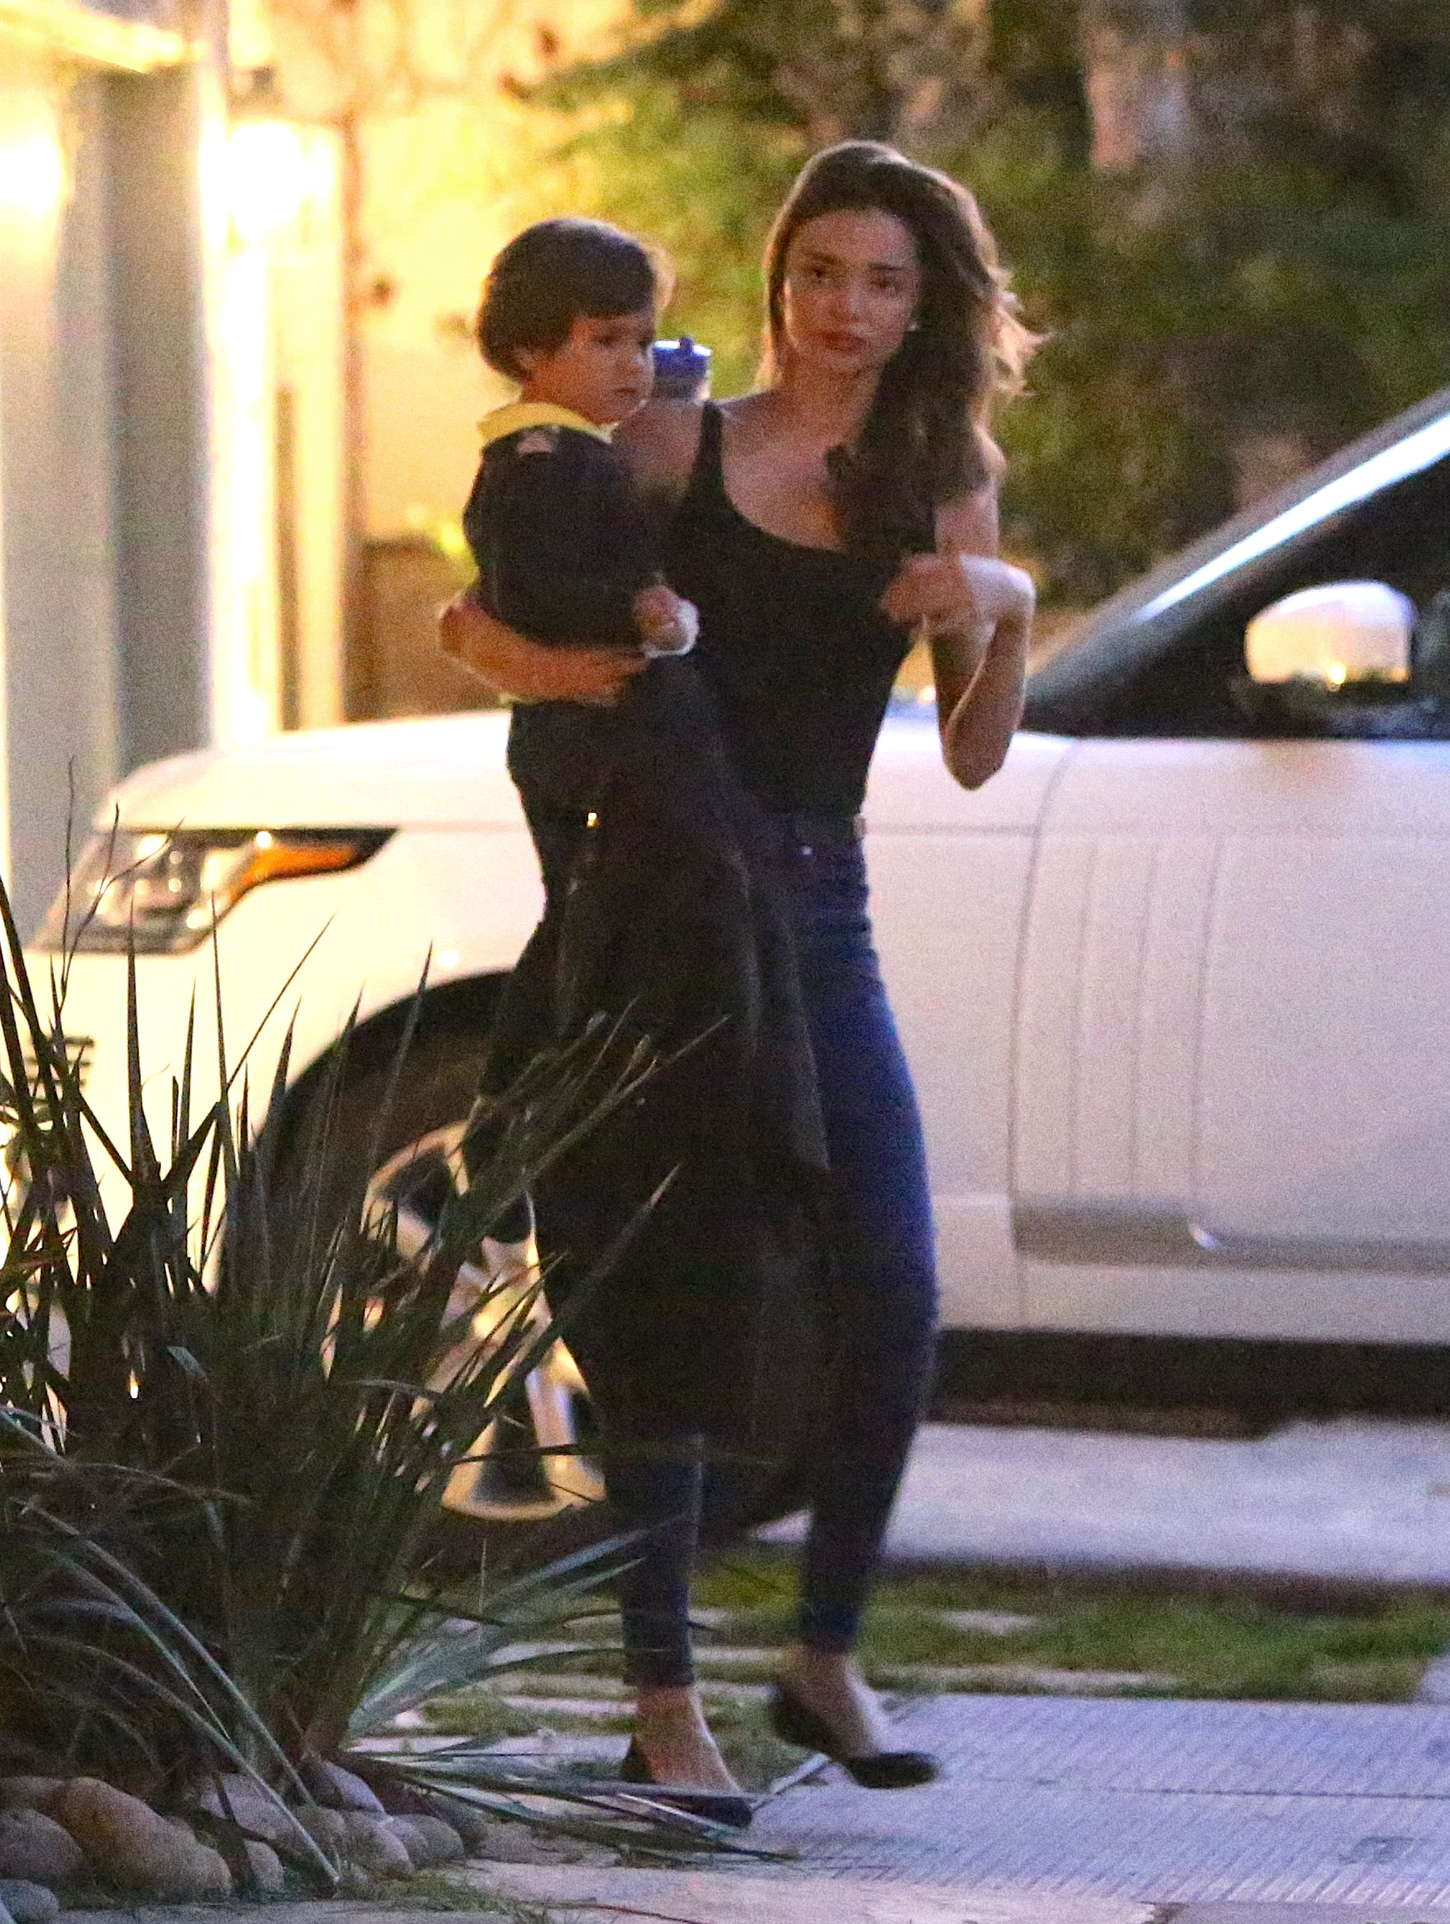 Miranda Kerr with her son out in Malibu